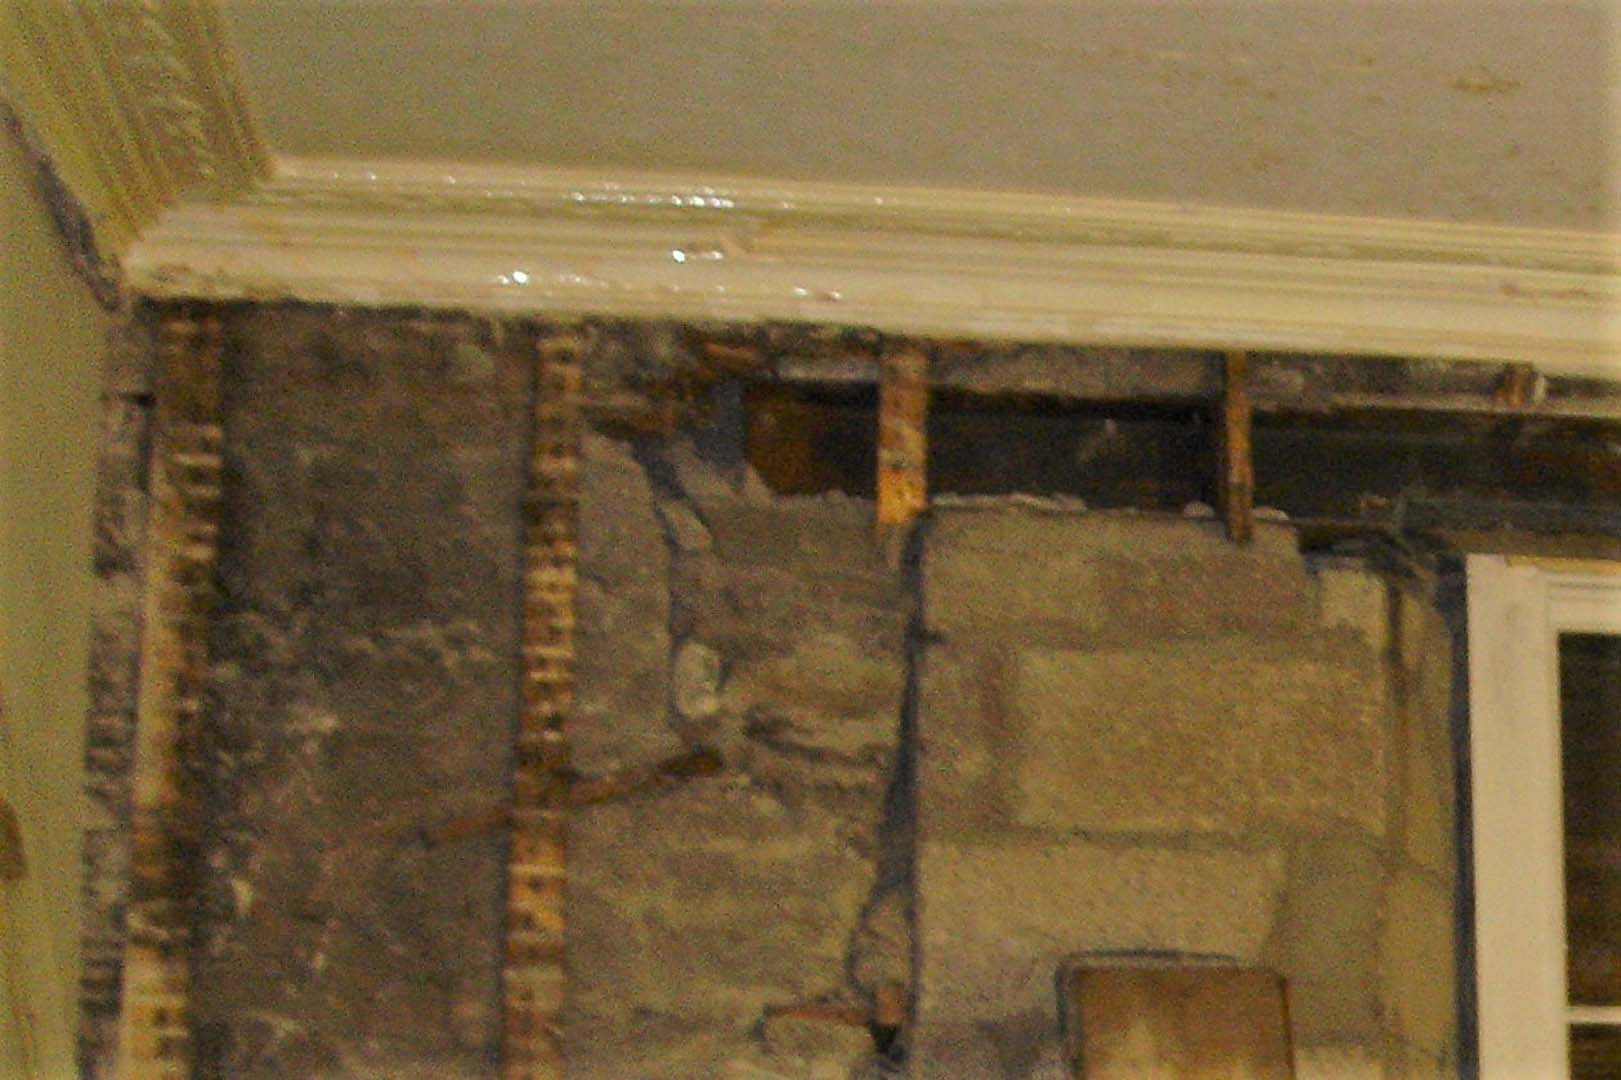 Georgian House image of wall during restoration